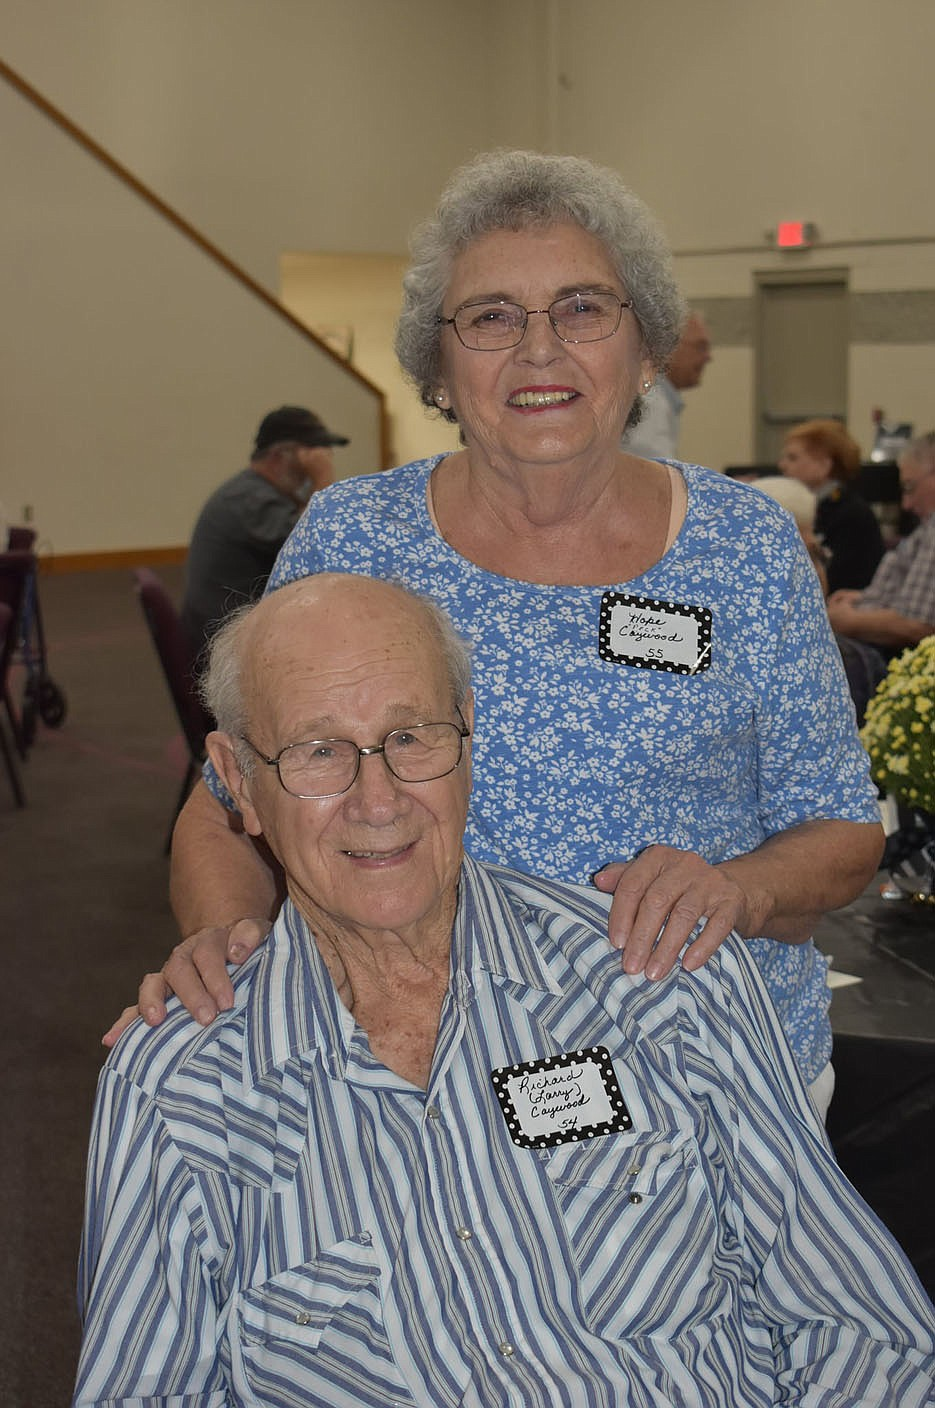 PHOTO BY DALANA FULLER. Photo of Hope and Larry Caywood. Many couples socialized with their previous classmates at the reunion.